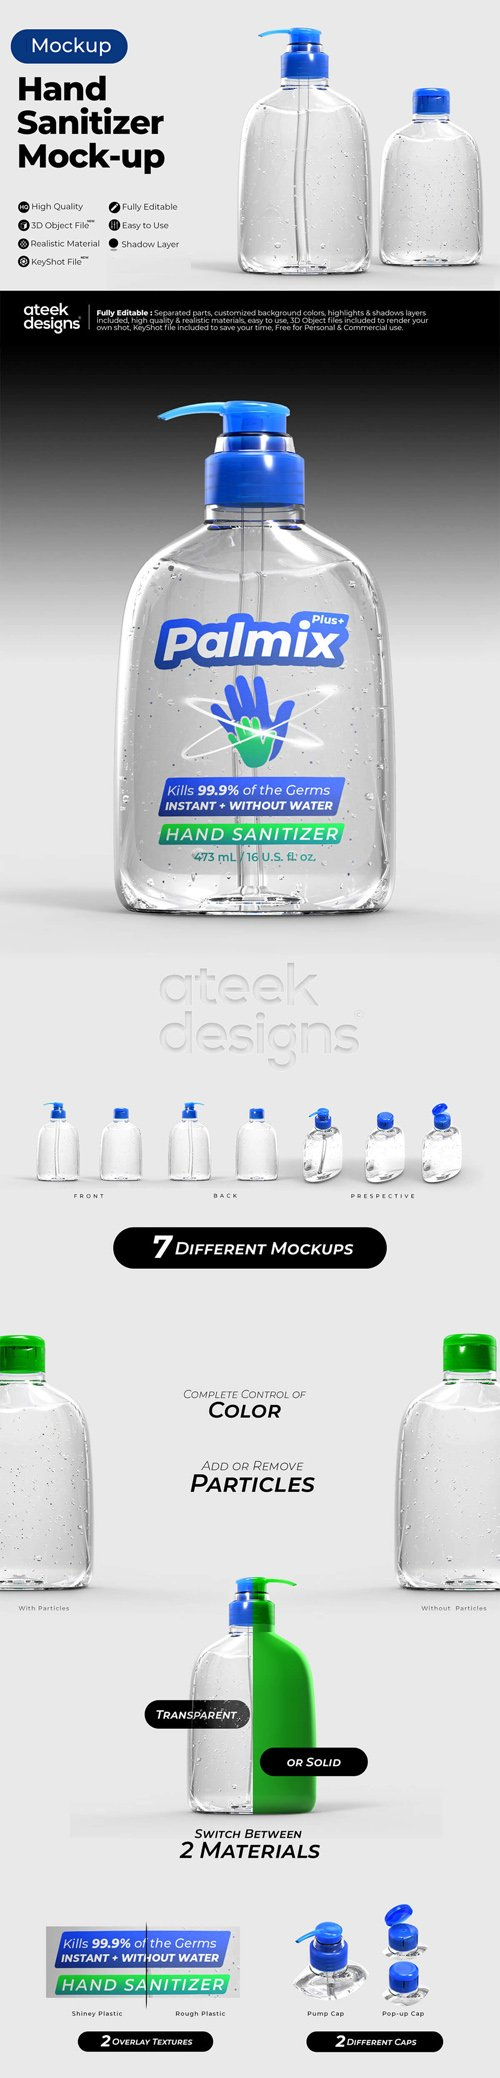 Hand Sanitizer Mockups for Cinema 4D & KeyShot